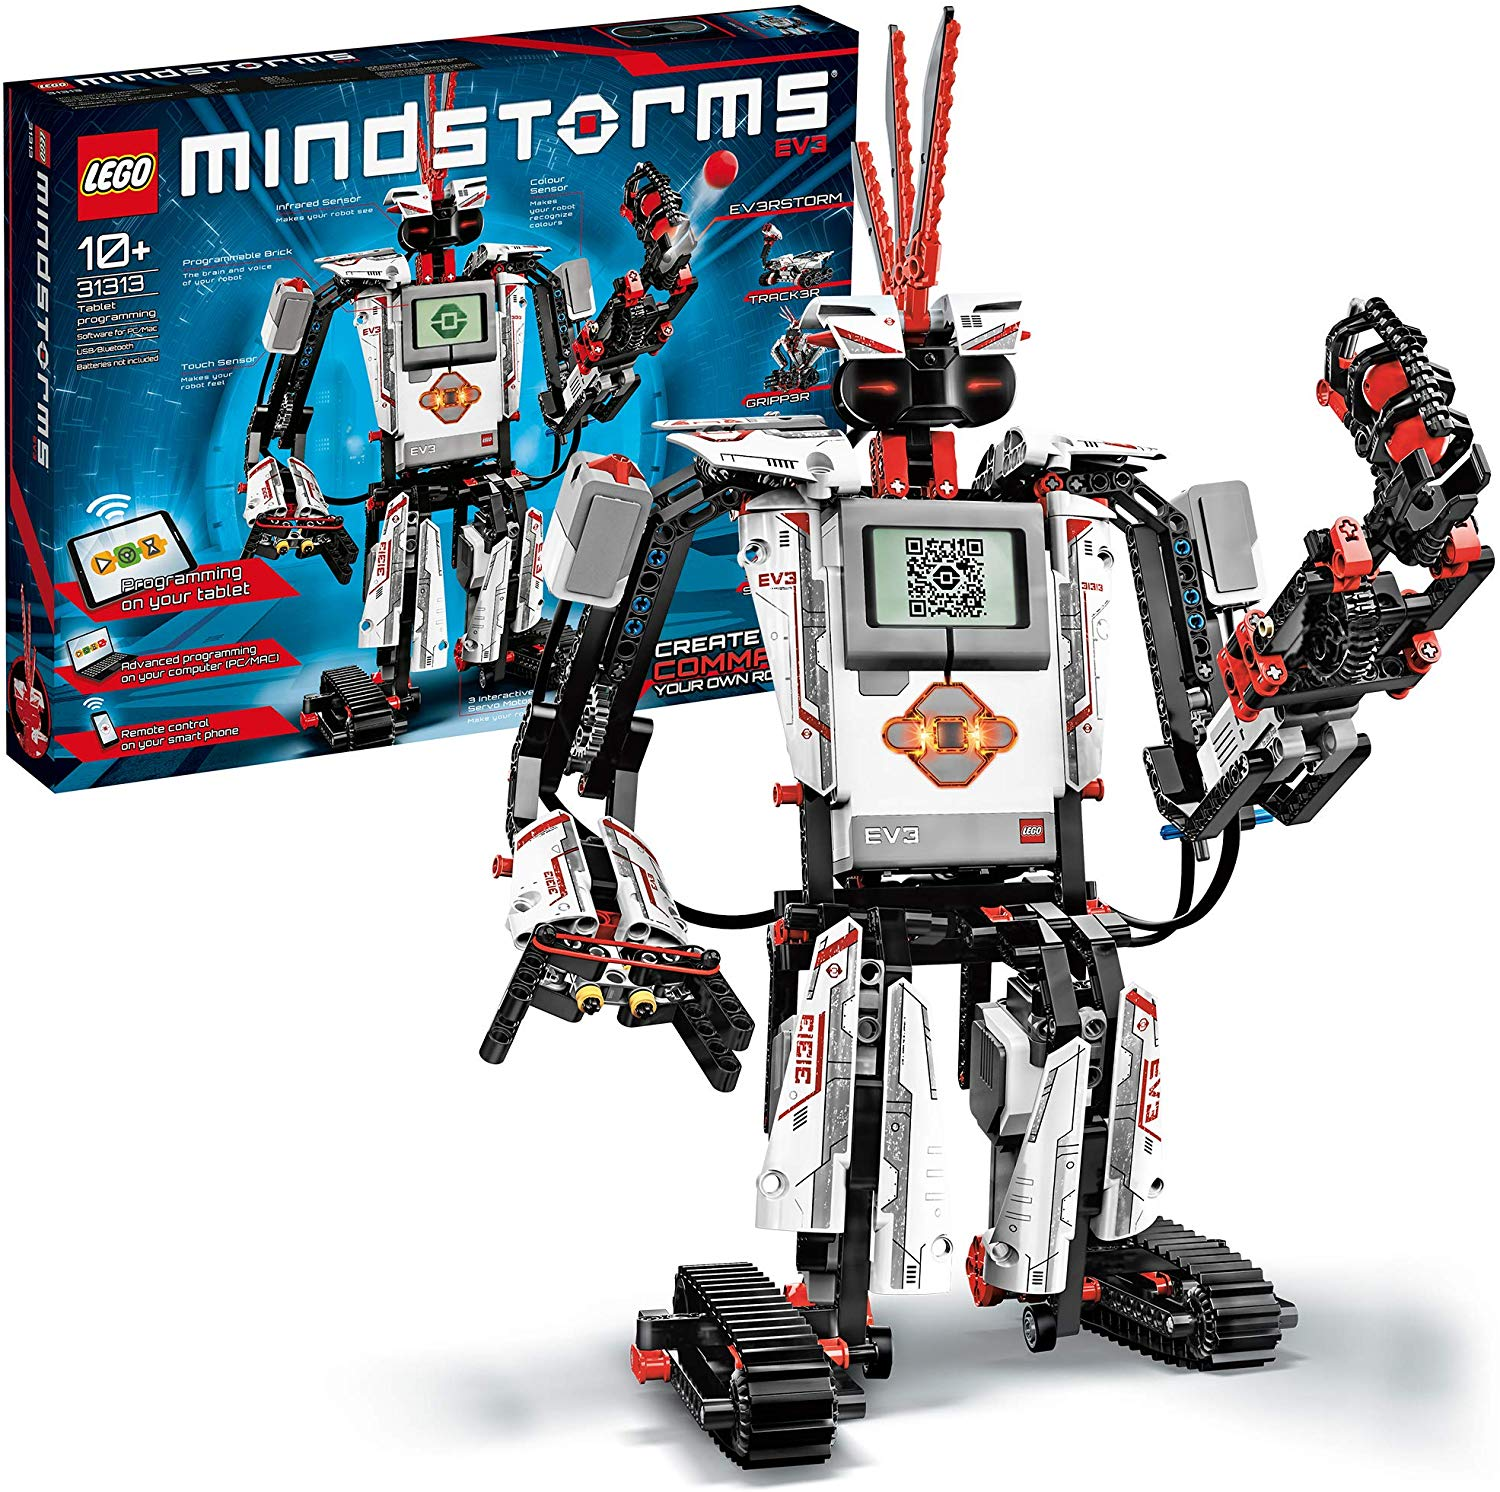 LEGO 31313 Mindstorms EV3 Robotics Kit